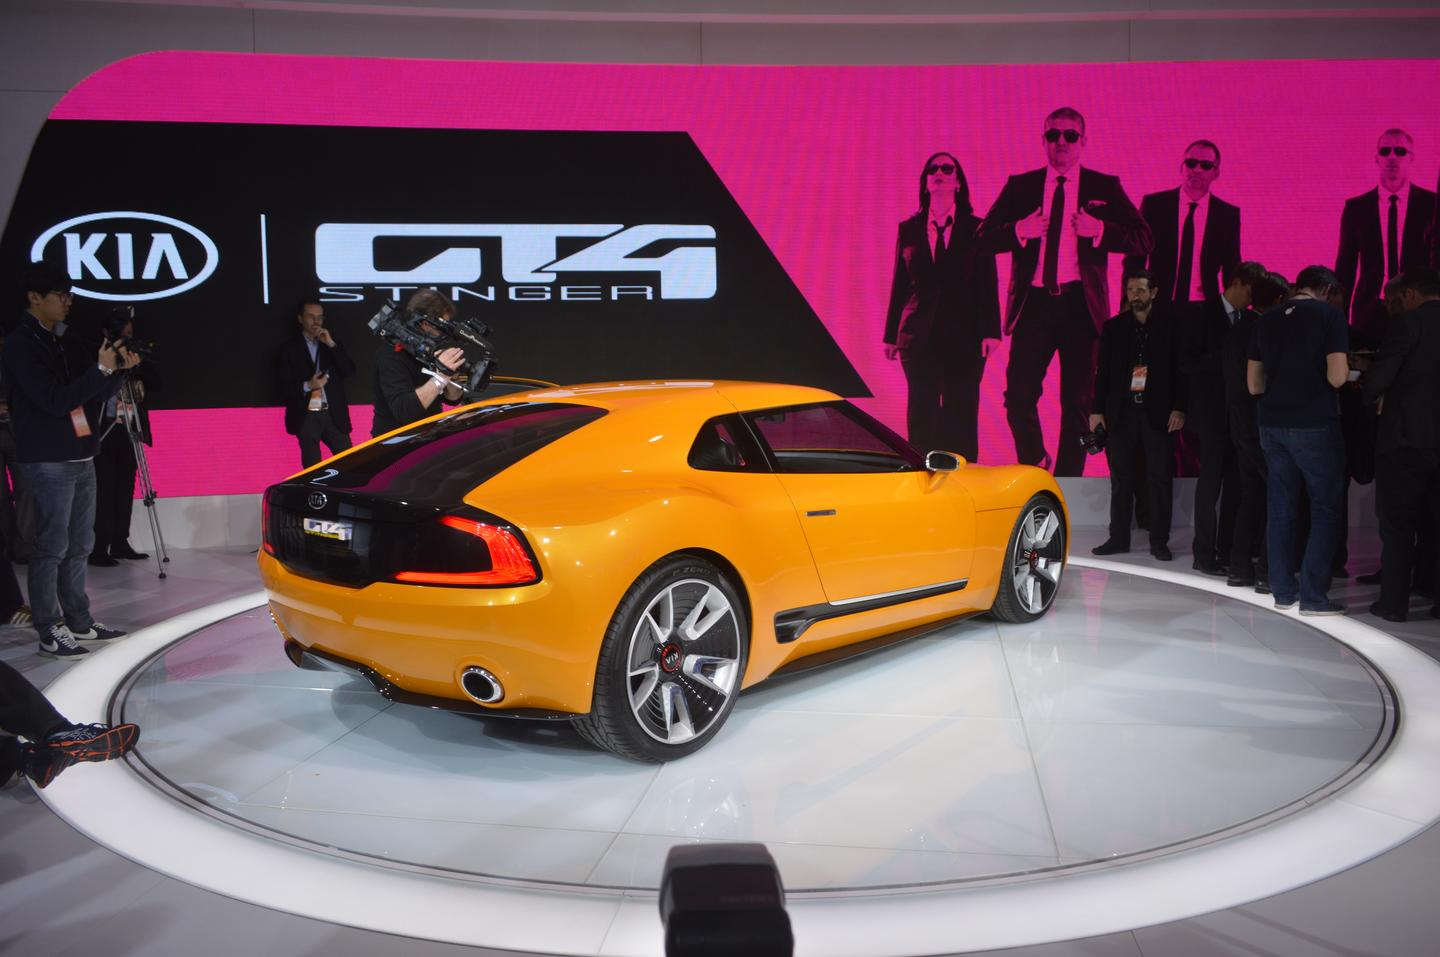 There are no plans to put the GT4 Stinger into production